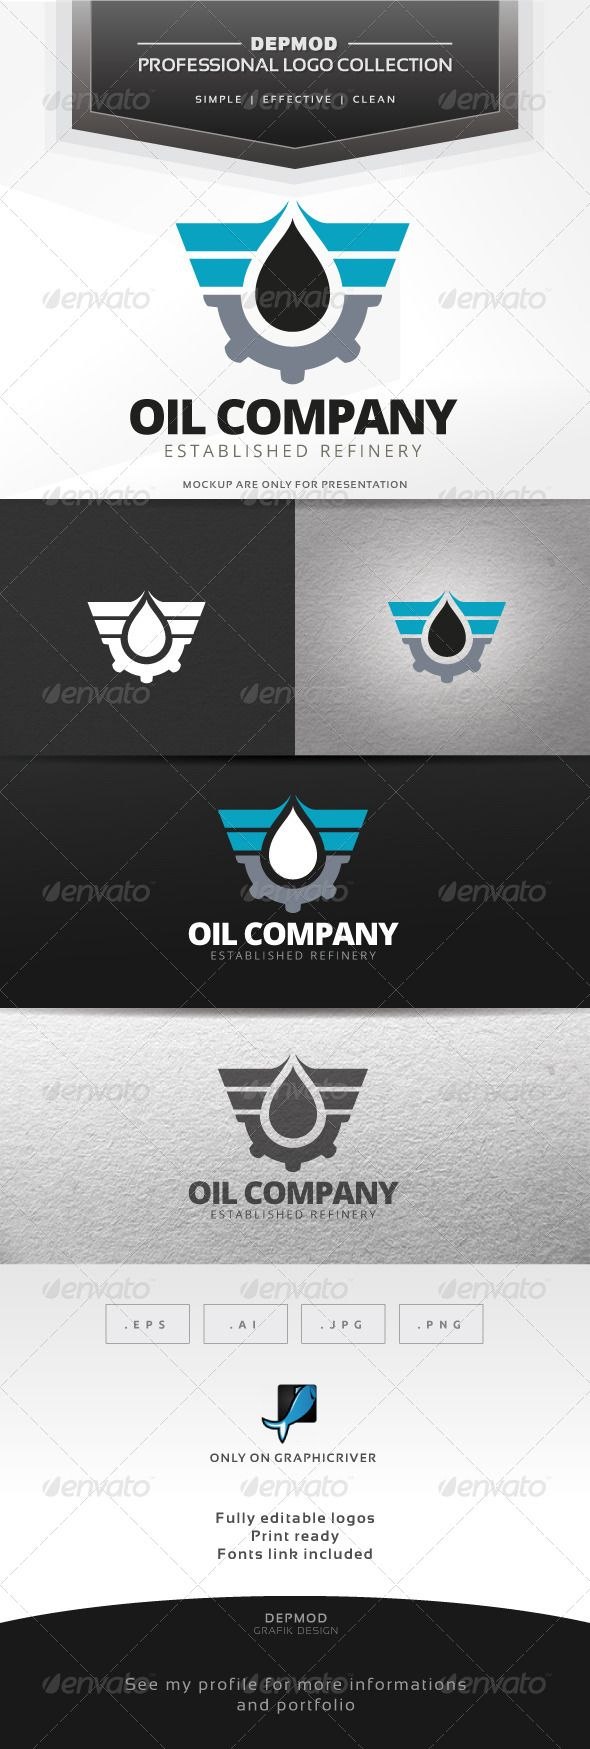 Oil Company - Logo Design Template Vector #logotype Download it here: http://graphicriver.net/item/oil-company-logo/7695472?s_rank=878?ref=nexion